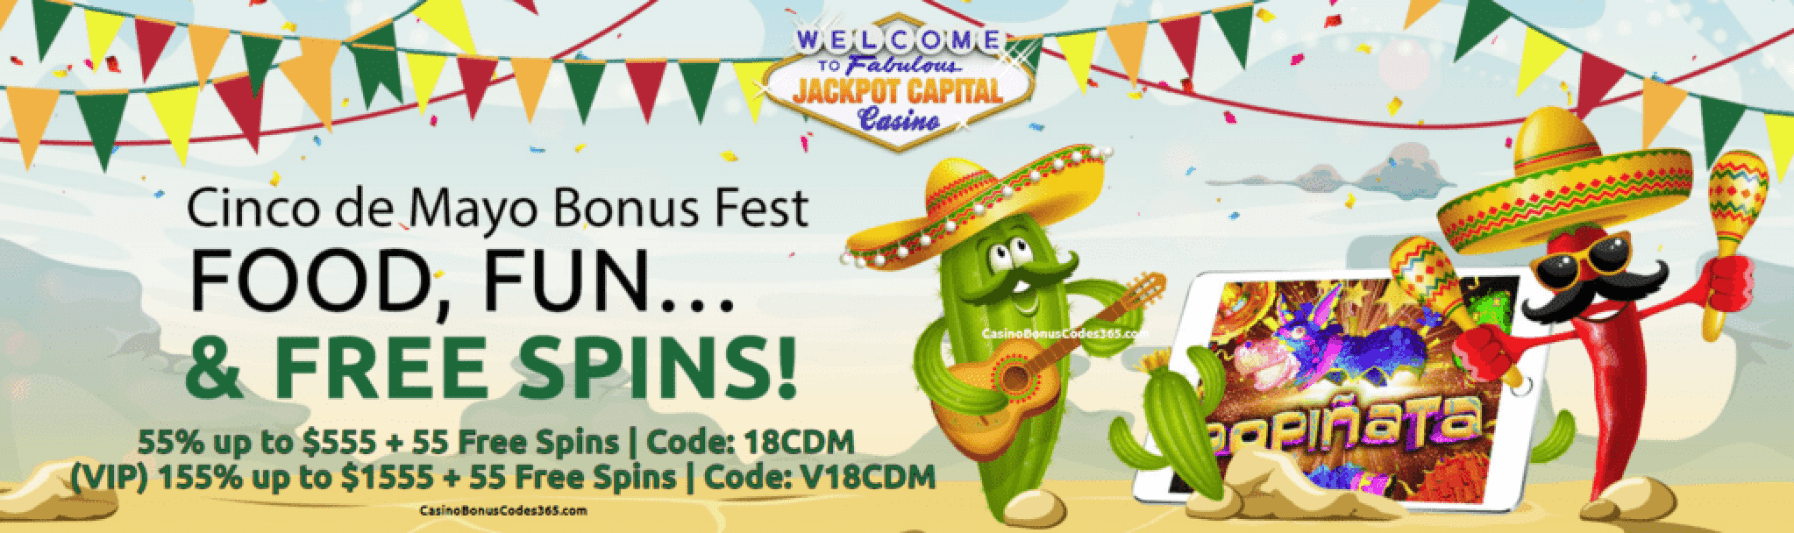 Jackpot Capital Cinco de Mayo